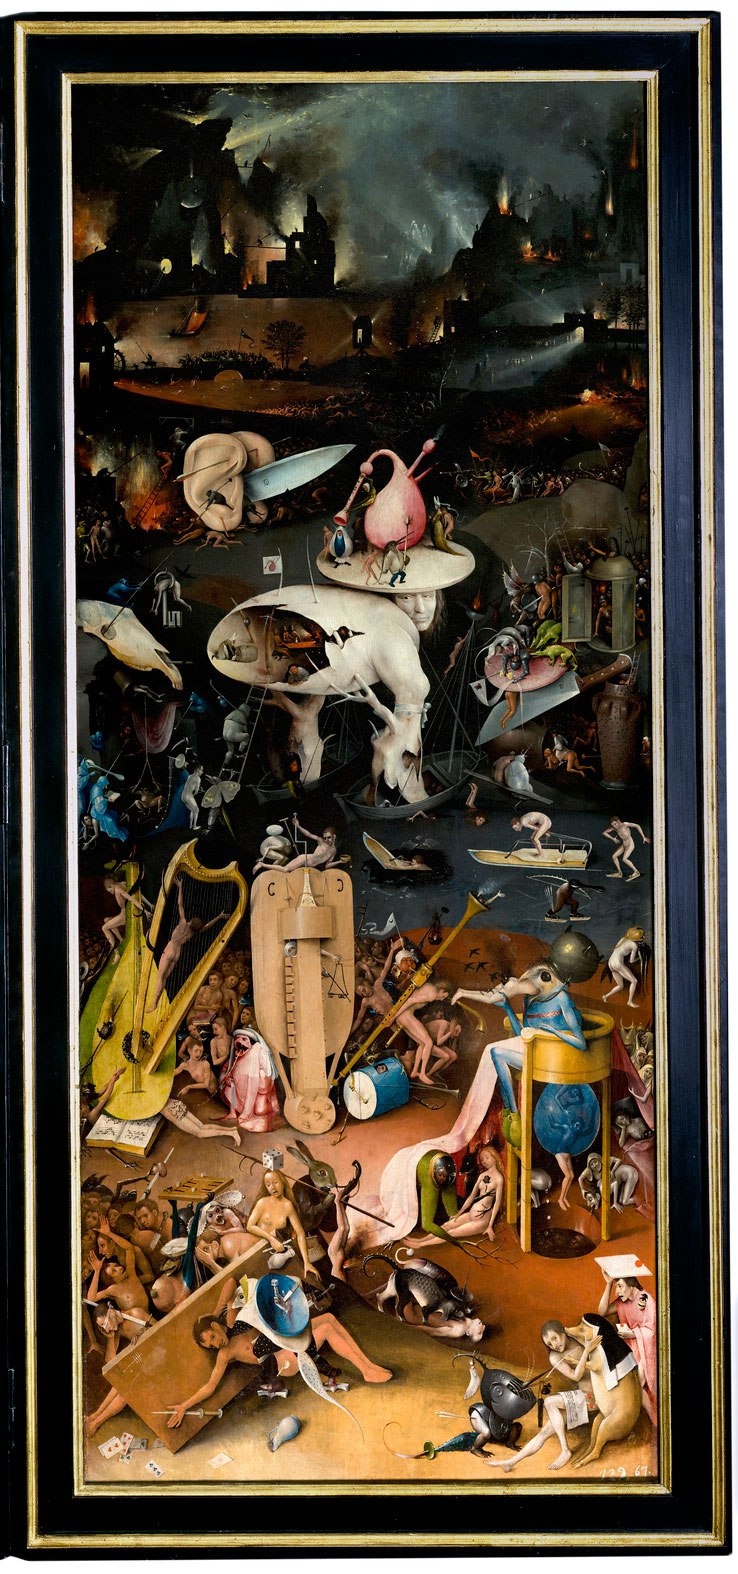 04 hieronymus bosch the garden of earthly delights